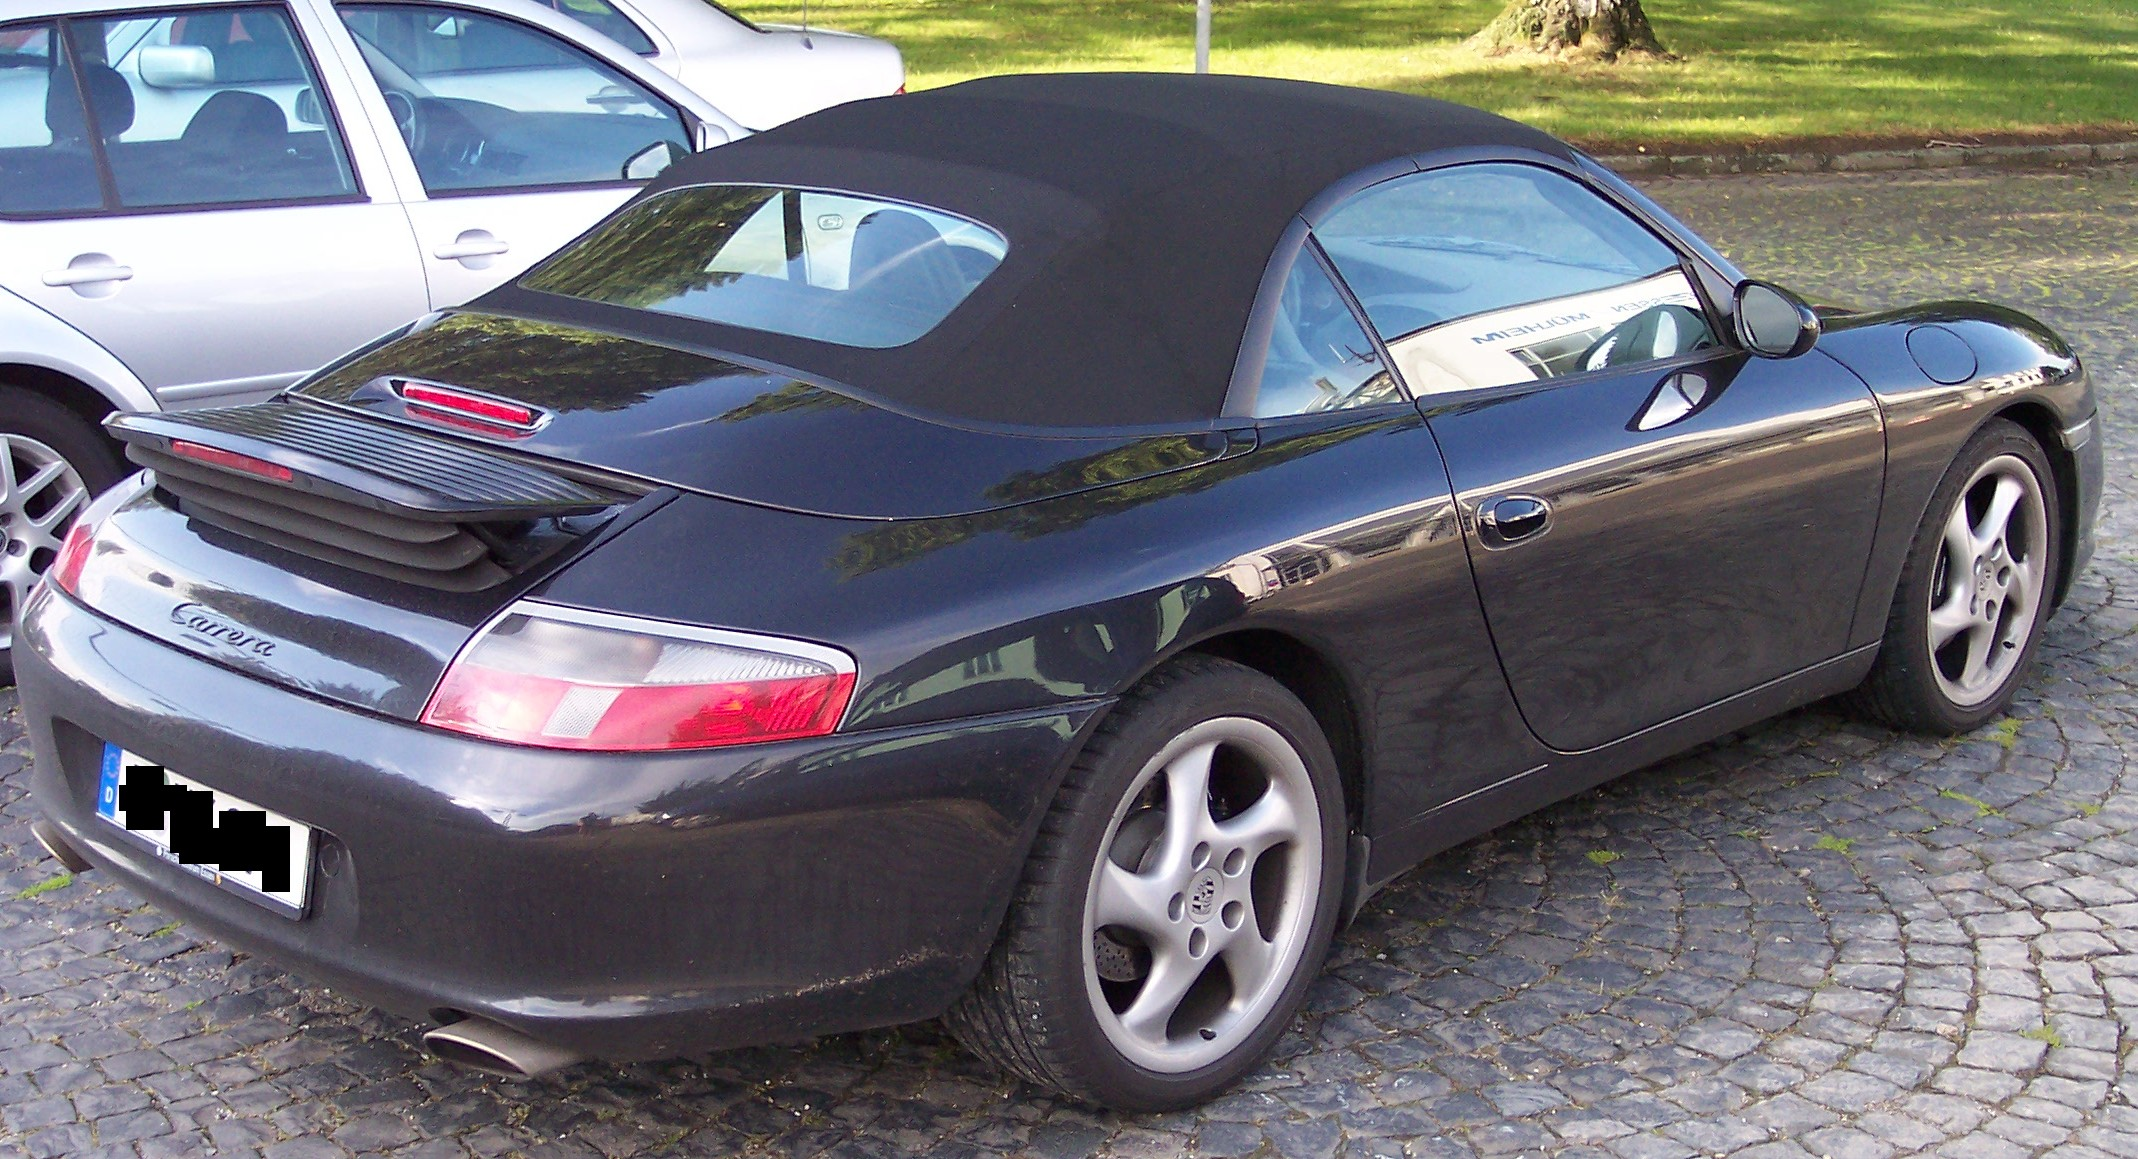 file porsche 996 cabrio wikimedia commons. Black Bedroom Furniture Sets. Home Design Ideas